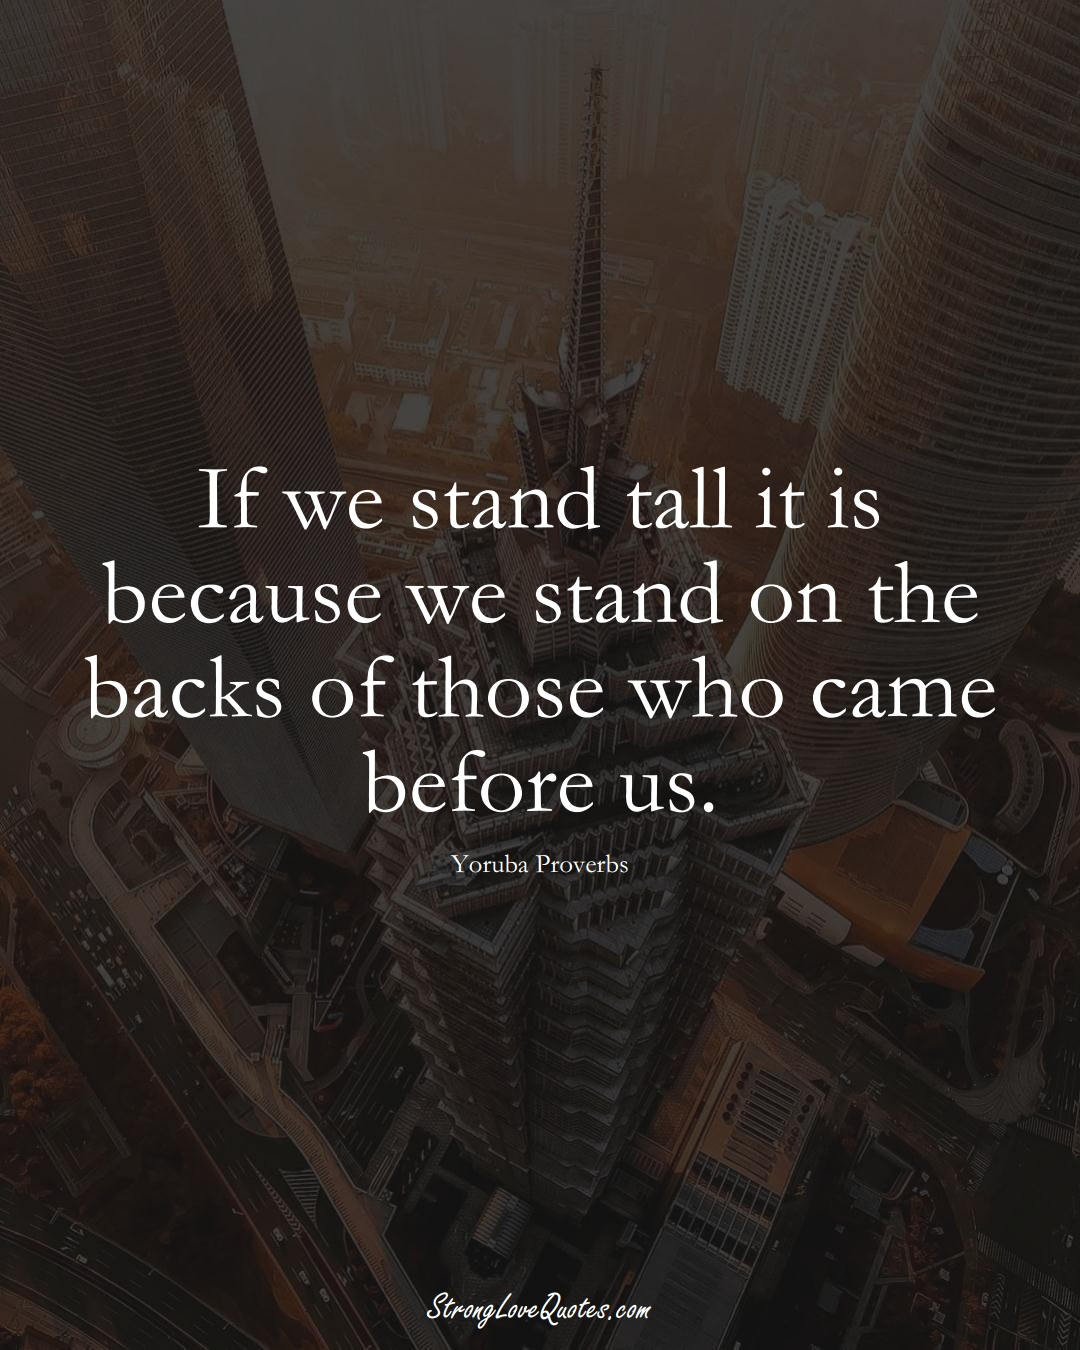 If we stand tall it is because we stand on the backs of those who came before us. (Yoruba Sayings);  #aVarietyofCulturesSayings